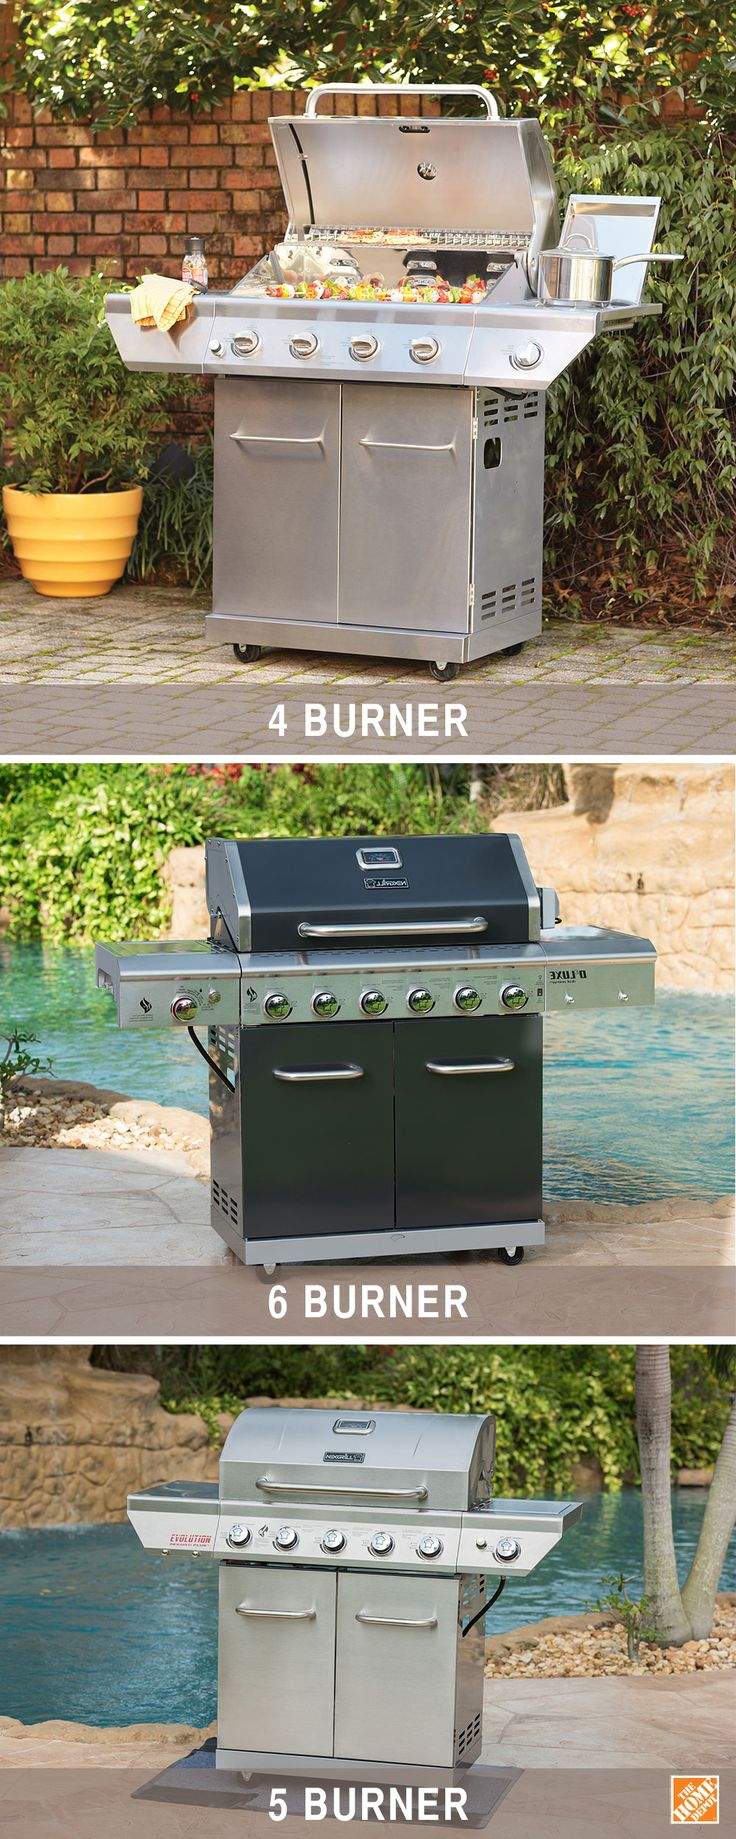 Even-heat technology across the grilling surface makes it easier for your cooking skills to shine. Nexgrill accomplishes this with side burners for additional cooking options and no-stick, no-burn surfaces for easy cleaning. Check out our wide selection of affordable Nexgrills available at The Home Depot.